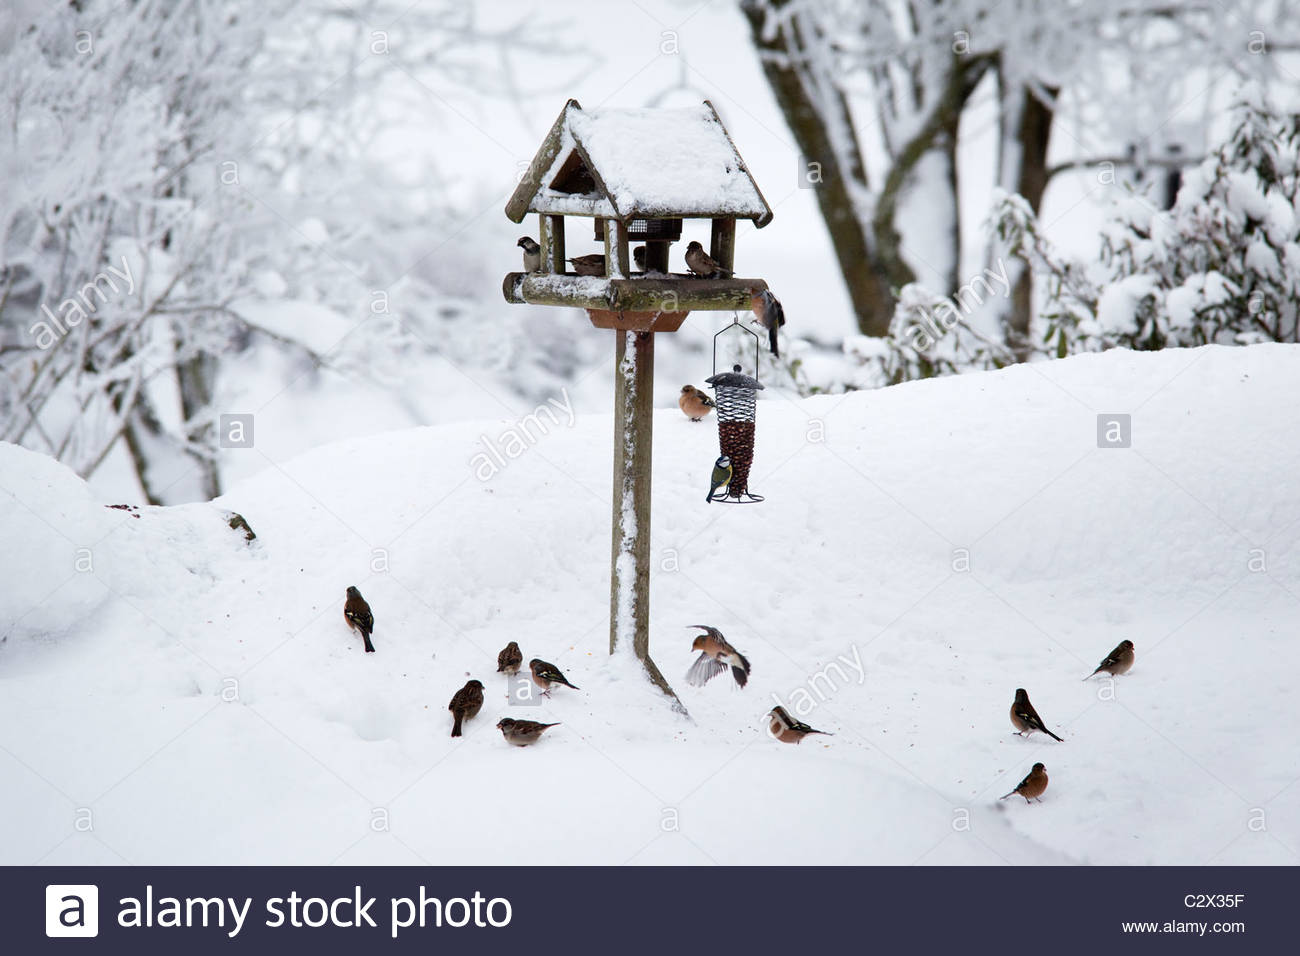 Chaffinches, Fringilla coelebs round bird feeders in snow, UK - Stock Image